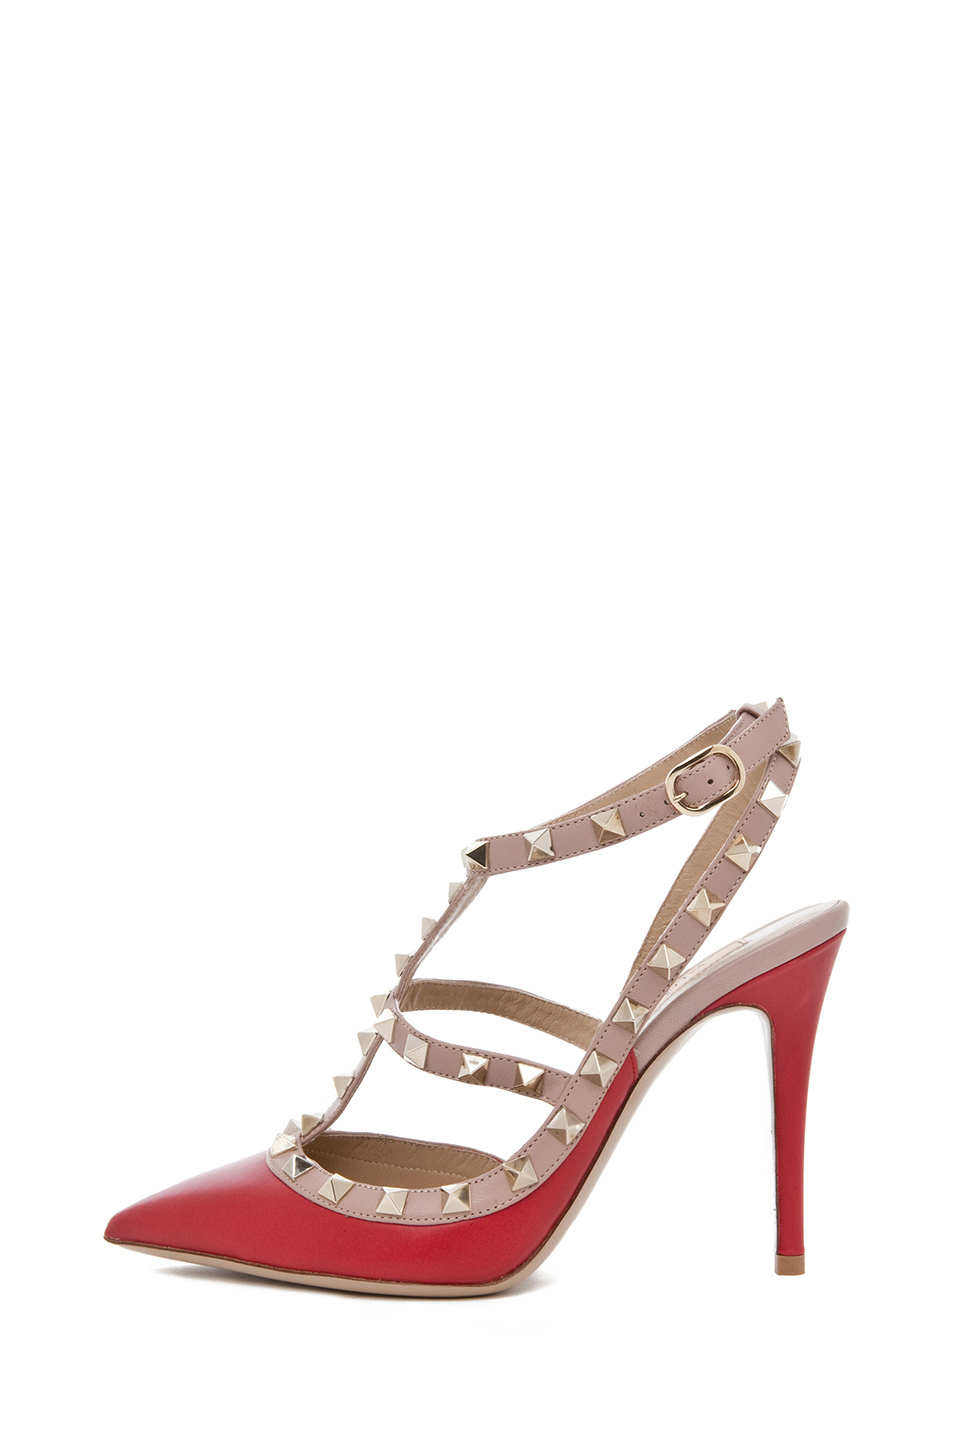 Valentino | Rockstud Leather Slingbacks T.100 in Red